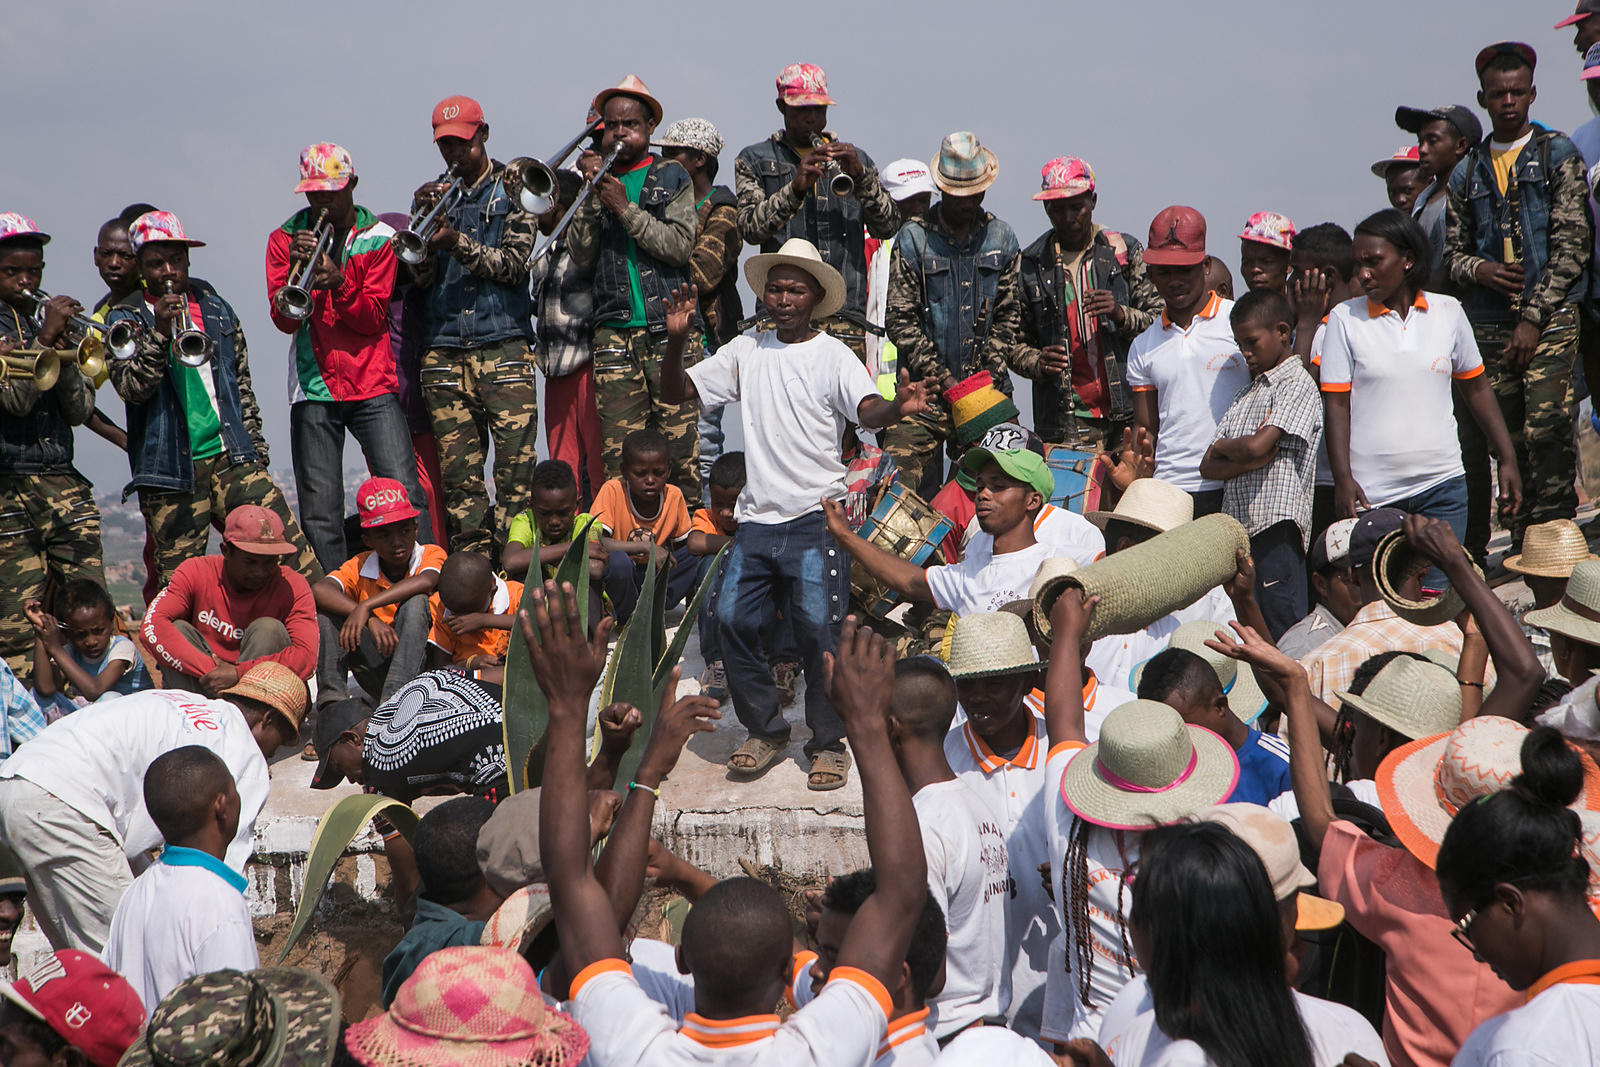 "People dance, sing and play music as they carry the bodies of their ancestors during a funerary tradition called the Famadihana in the village of Ambohijafy, a few kilometres from Antananarivo, on September 23, 2017. During the Famadihana, which can be translated as ""turning of the bones"", several crypts are opened and people take the bodies of their ancestors from the family crypts and rewrap them in fresh cloth, then dance with the corpses in their arms at the pace of traditional Malagasy band's music. The Famadihana is a pillar in the Malagasy ancestor's worship and is celebrated each three, five or seven years."